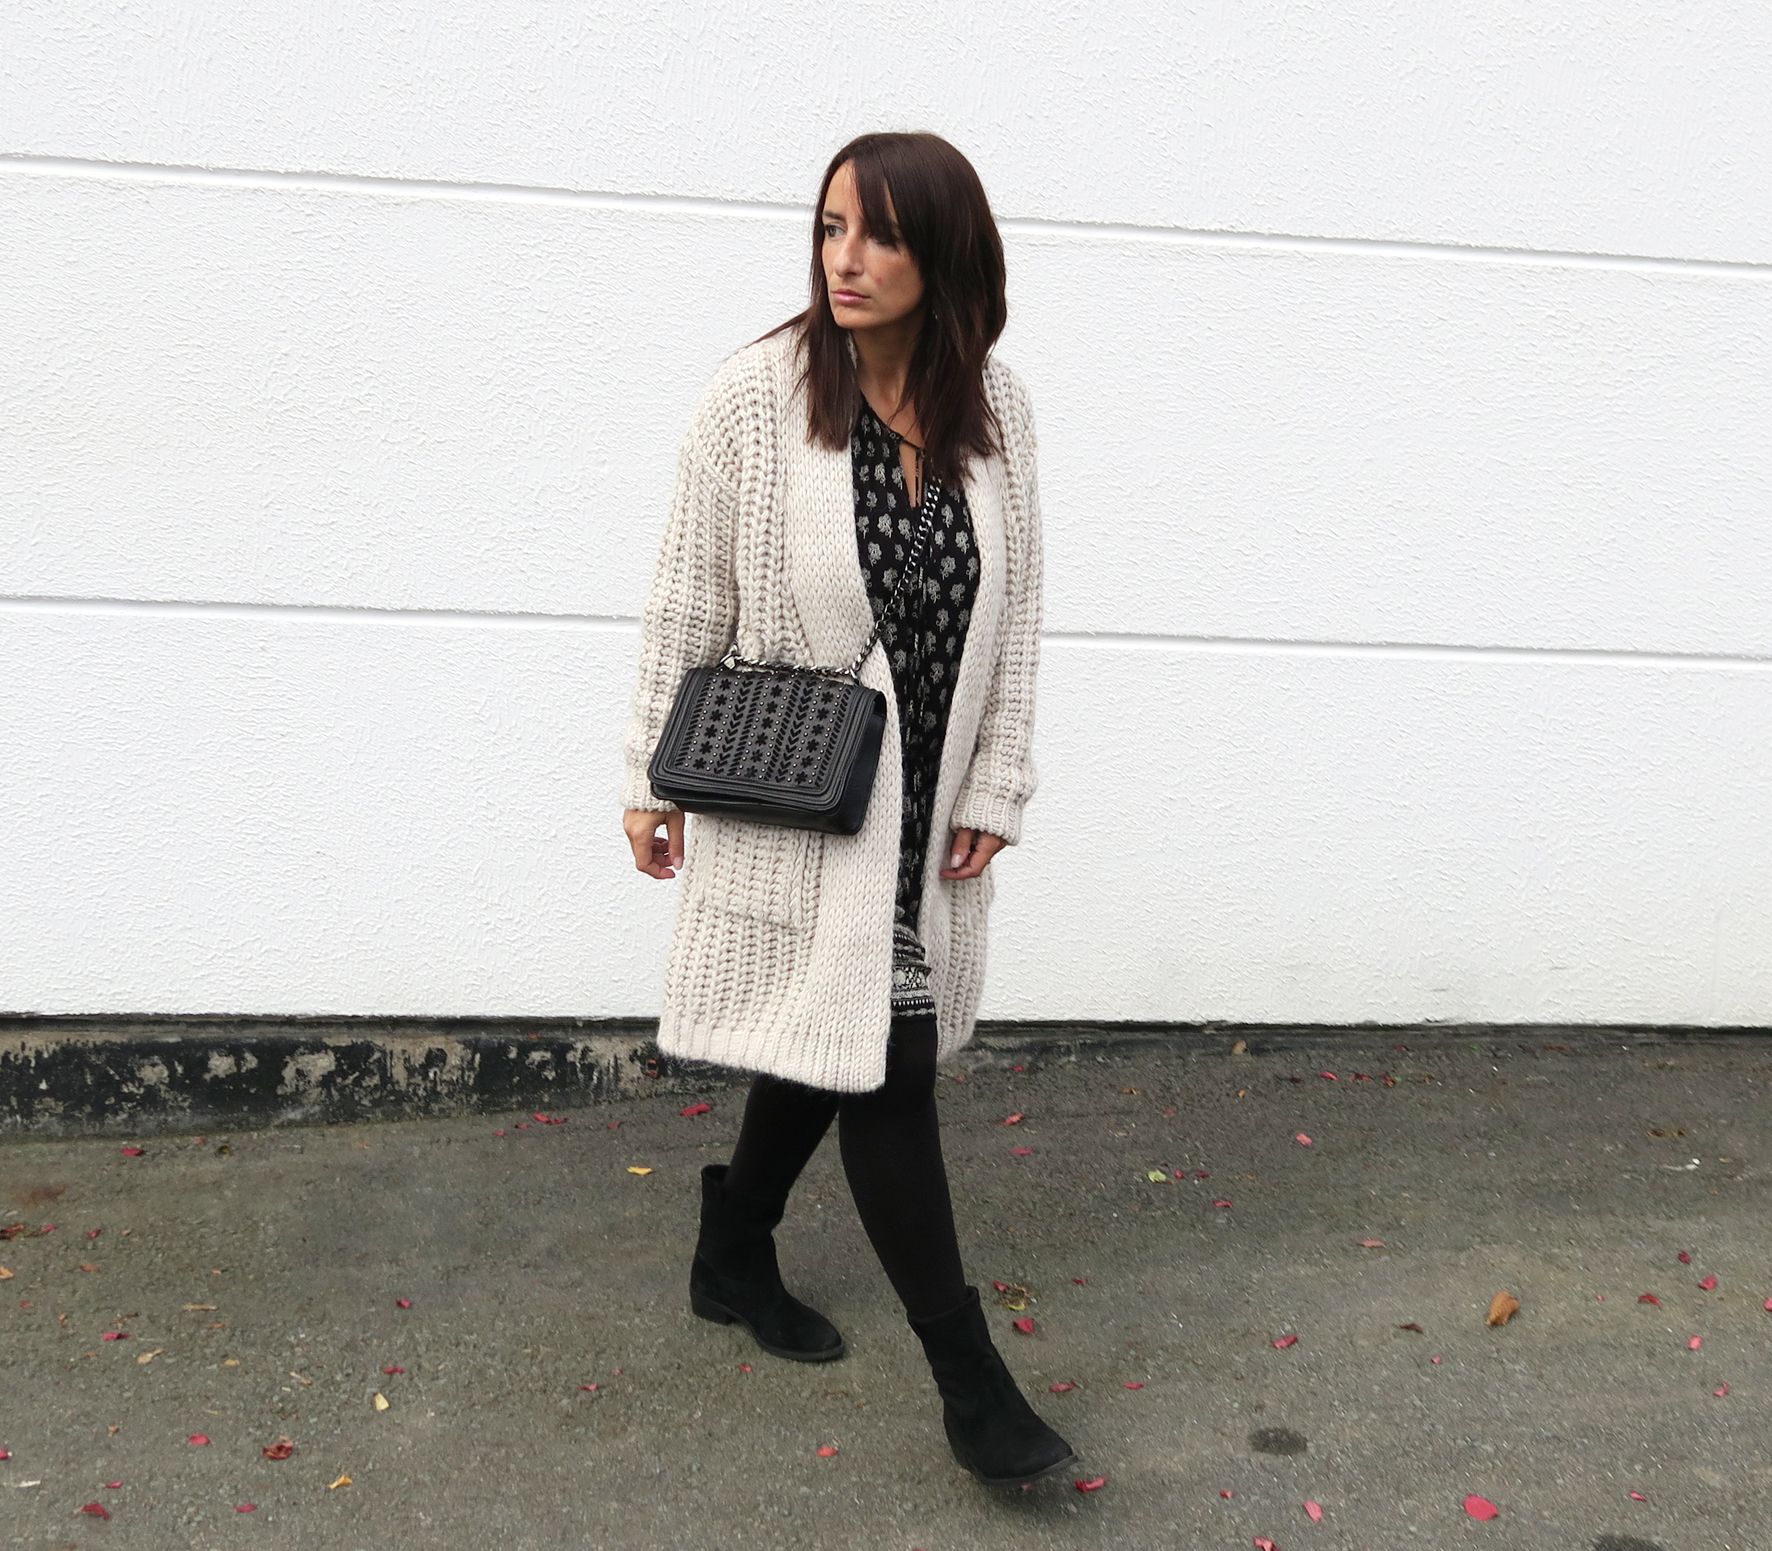 blogger-style-winter-dress-knit-fashionblogger-streetstyle-boots-3